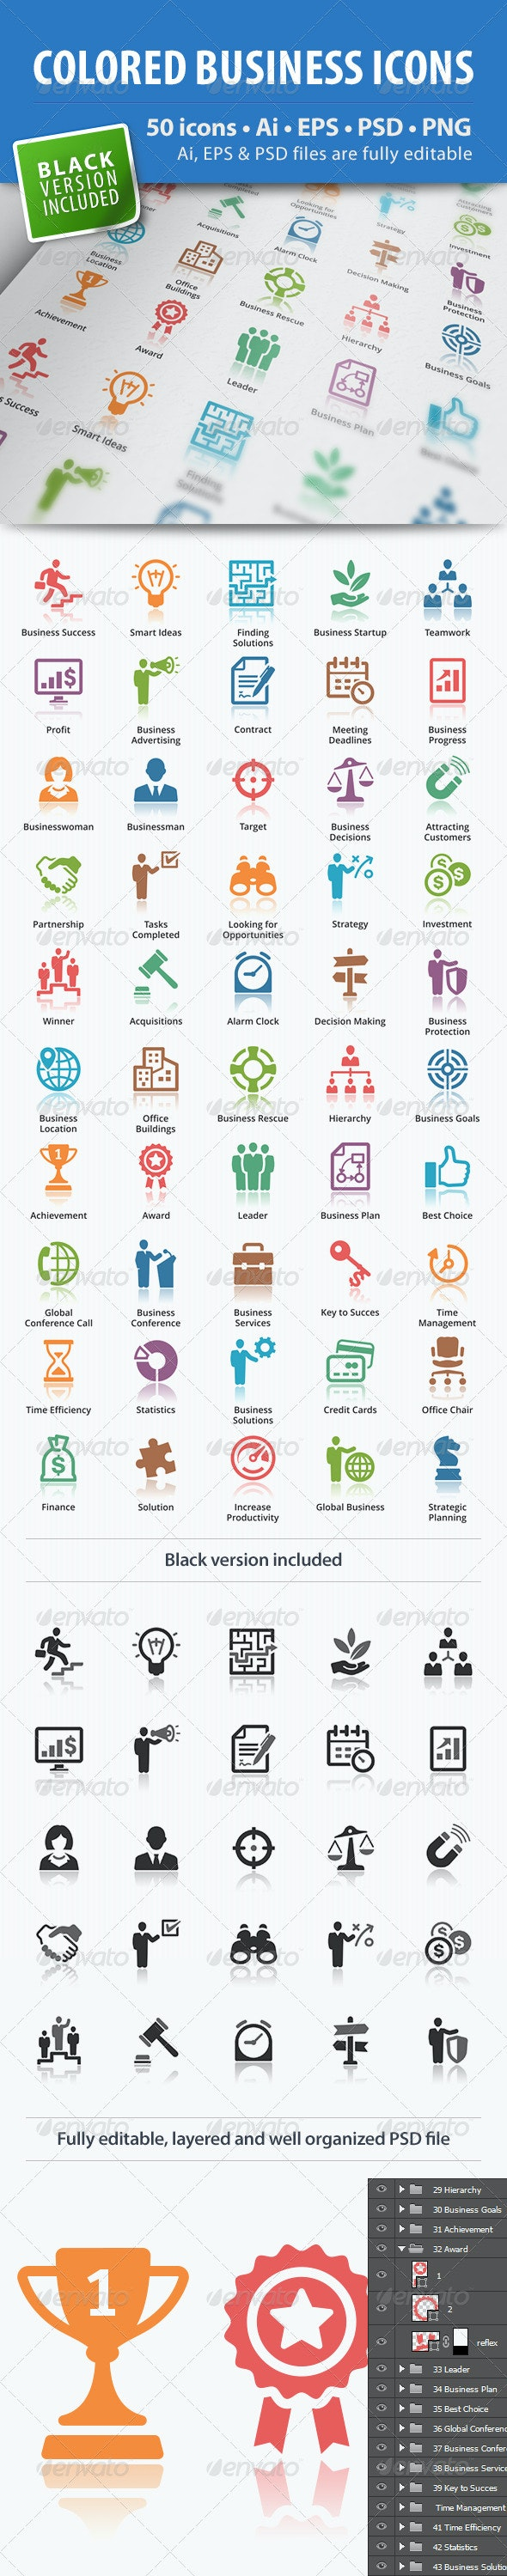 Business Icons - Colored Series - Business Icons